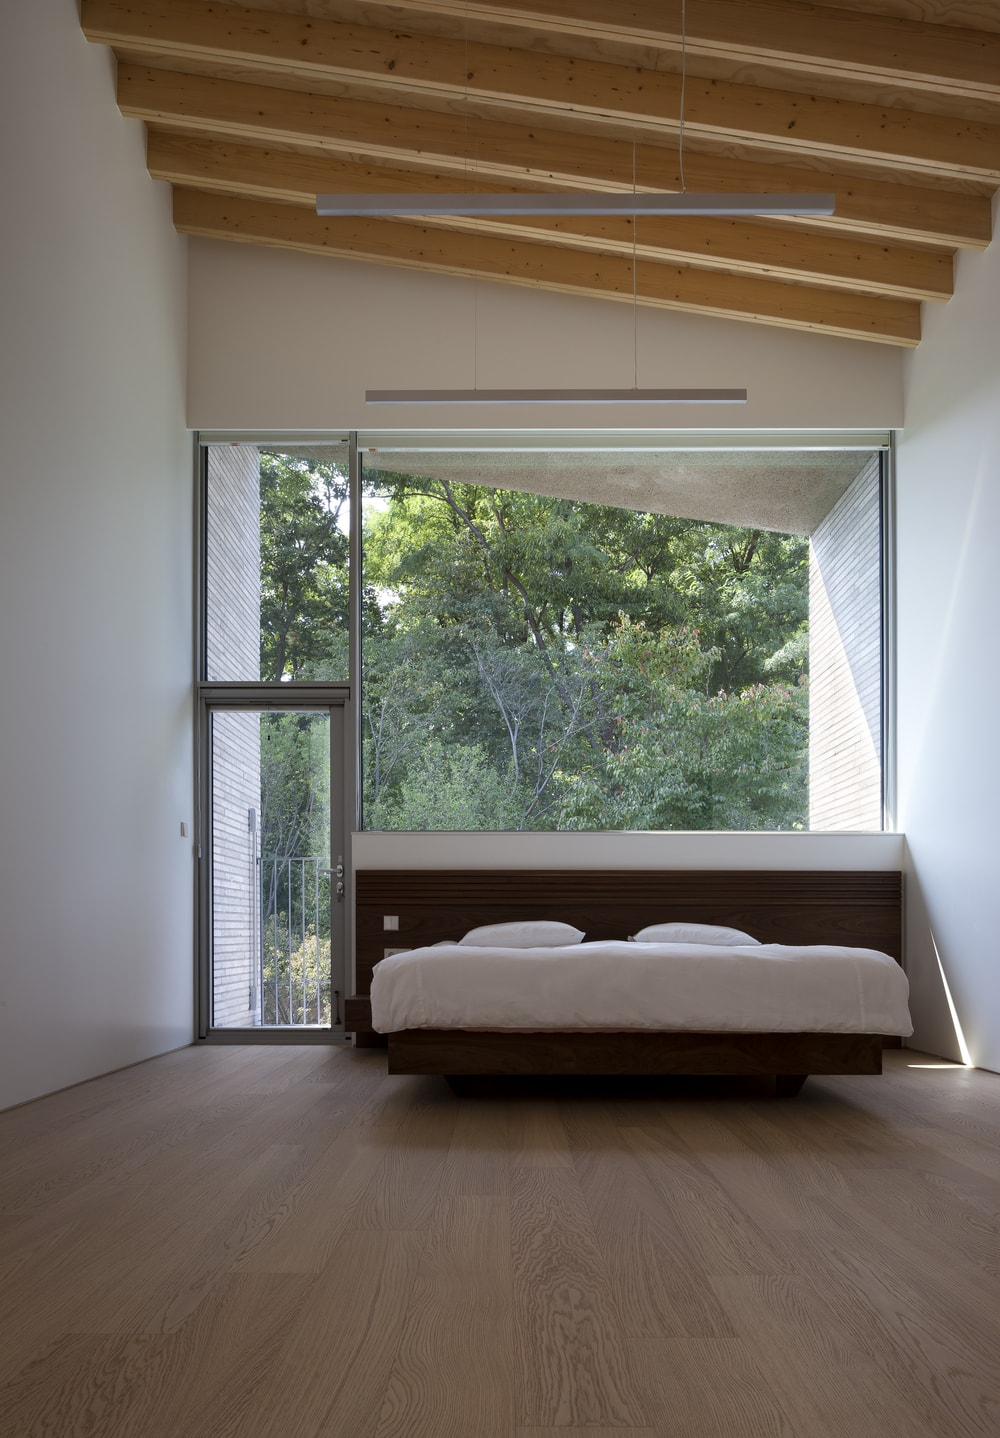 This simple and bright bed has a modern floating wooden platform bed that pairs well with the hardwood flooring. These are then complemented by the large glass wall and door that brings in natural lighting.